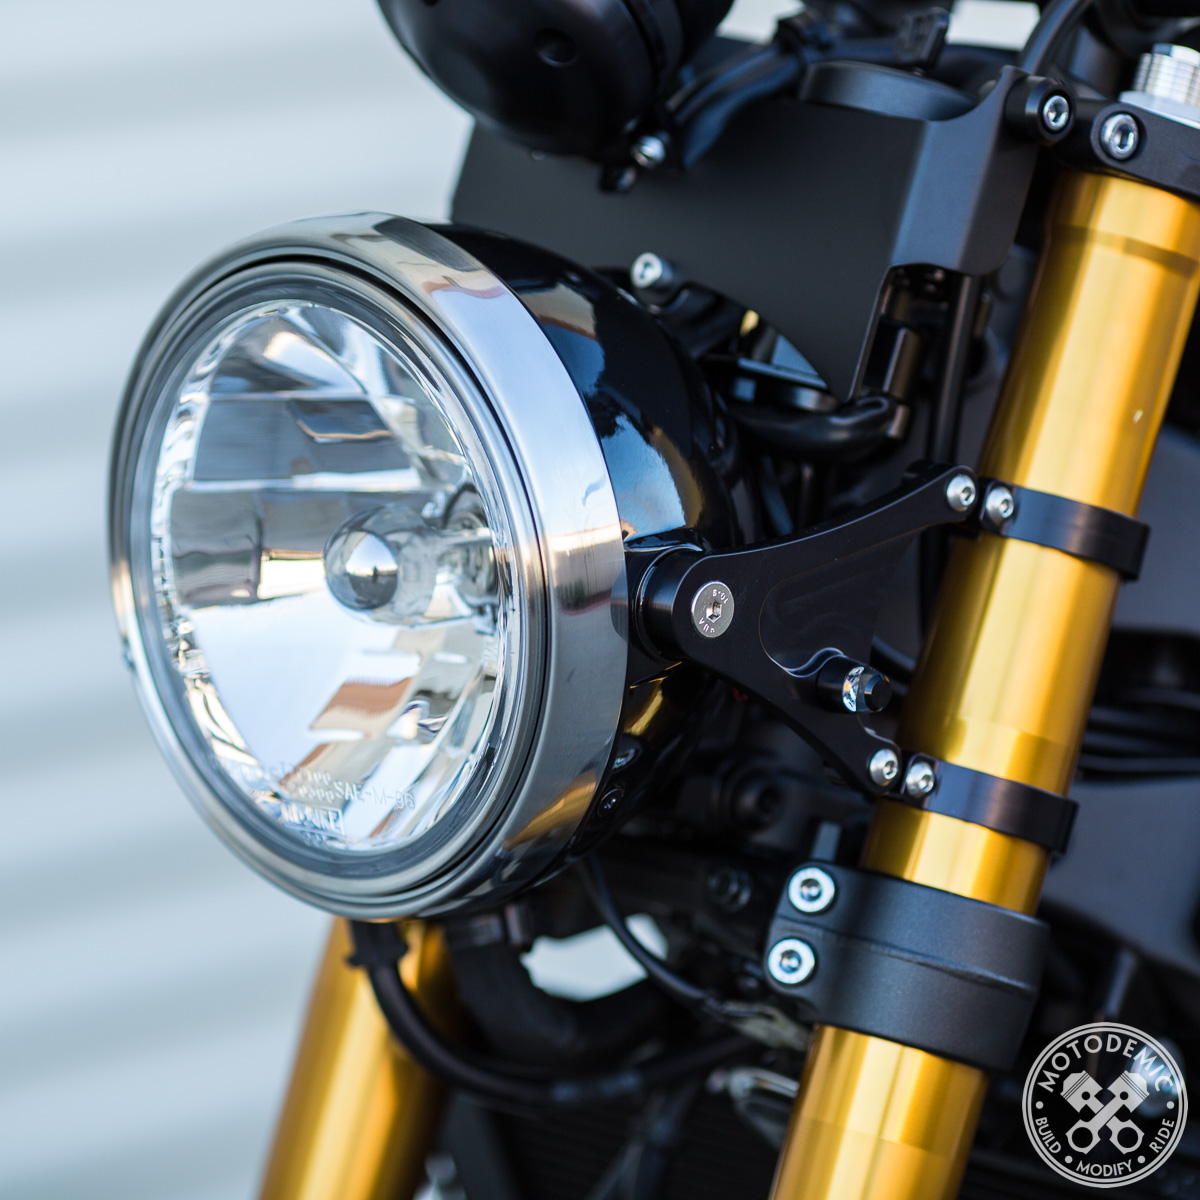 Xsr900 7 Inch Headlight Conversion  U2022 Motodemic